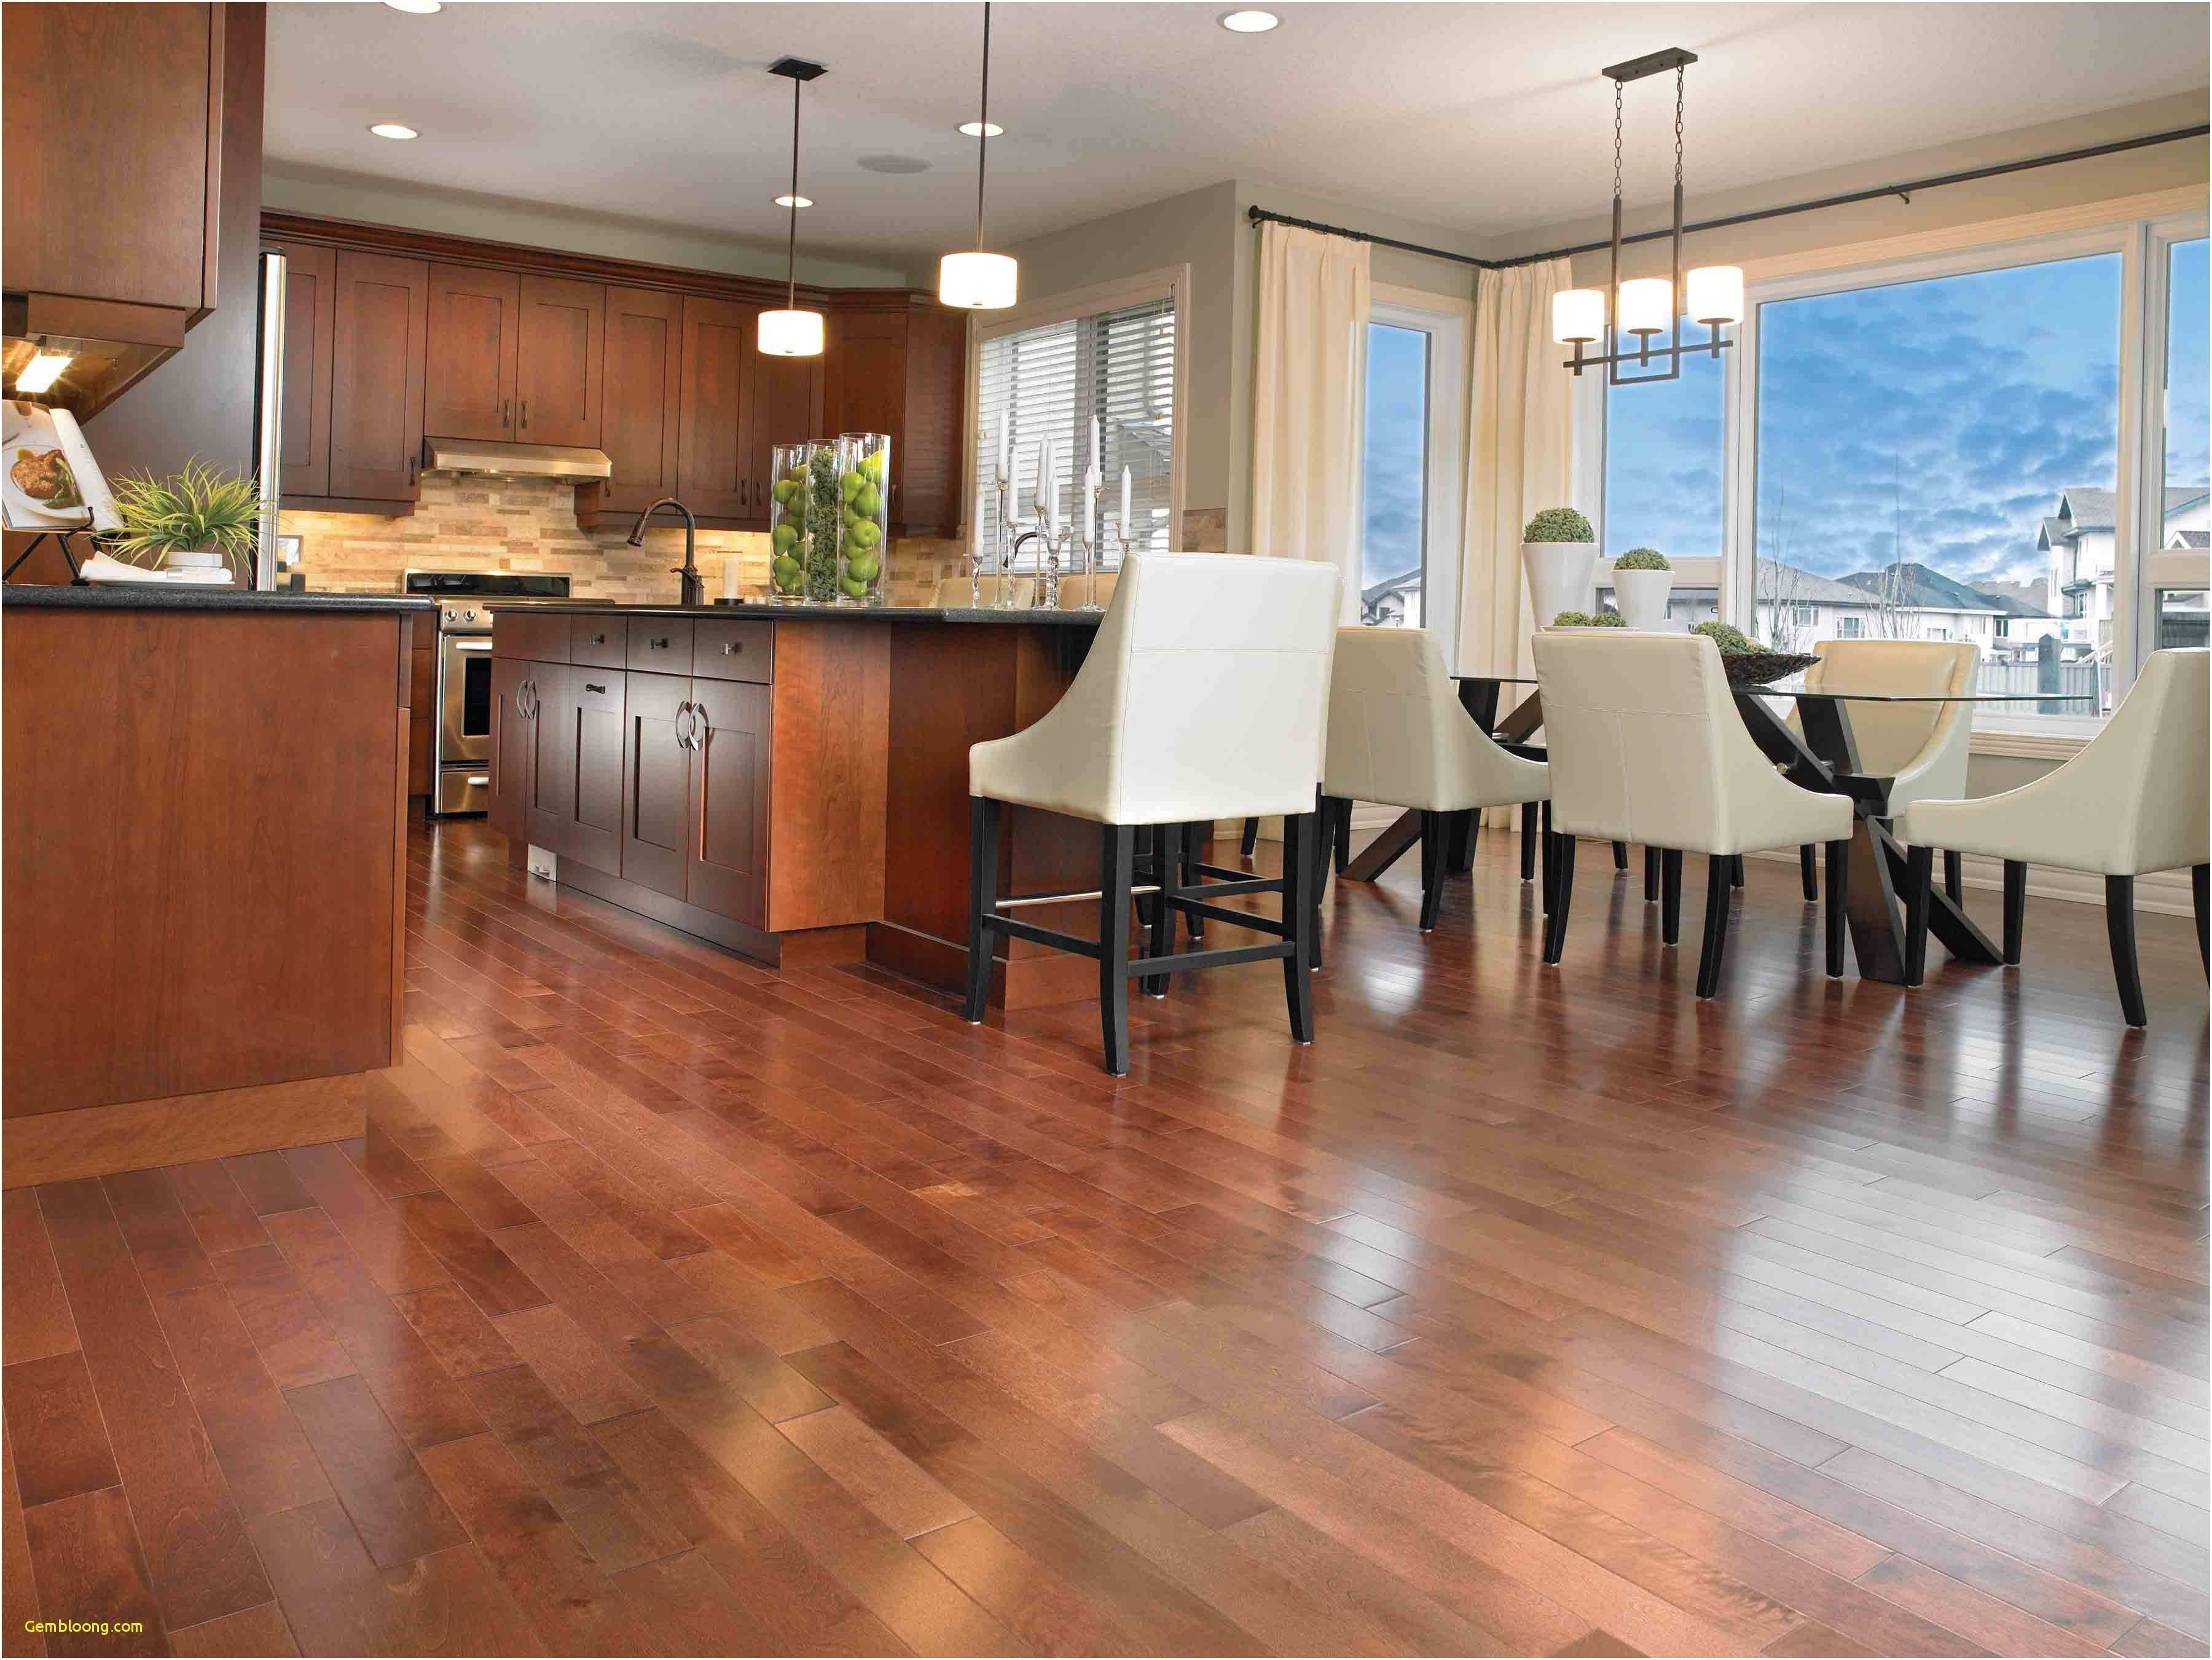 dark hardwood floors for sale of wood for floors facesinnature intended for furniture wood floors flooring nj furniture design hard wood flooring new 0d grace place